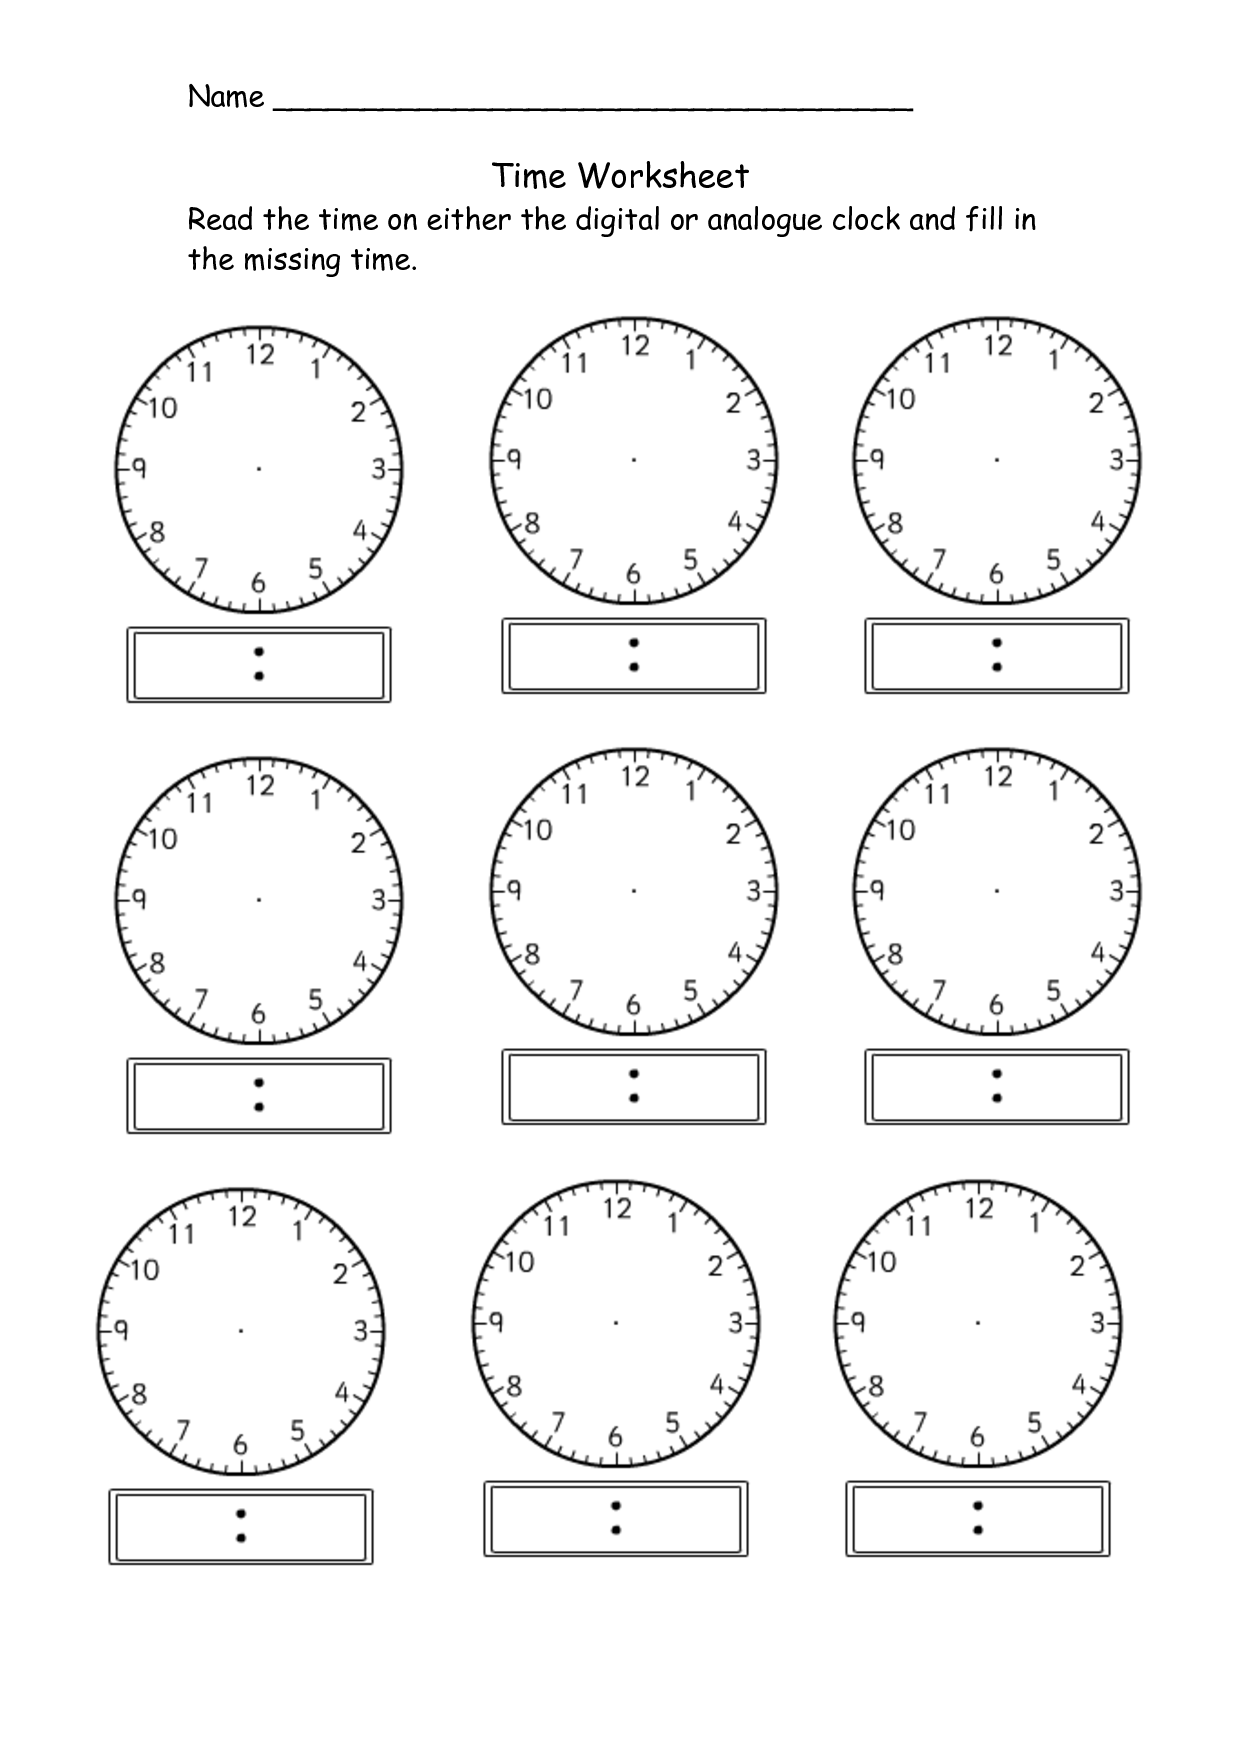 Worksheets Digital Clock Worksheets 5 best images of digital clock worksheets printable telling time clocks